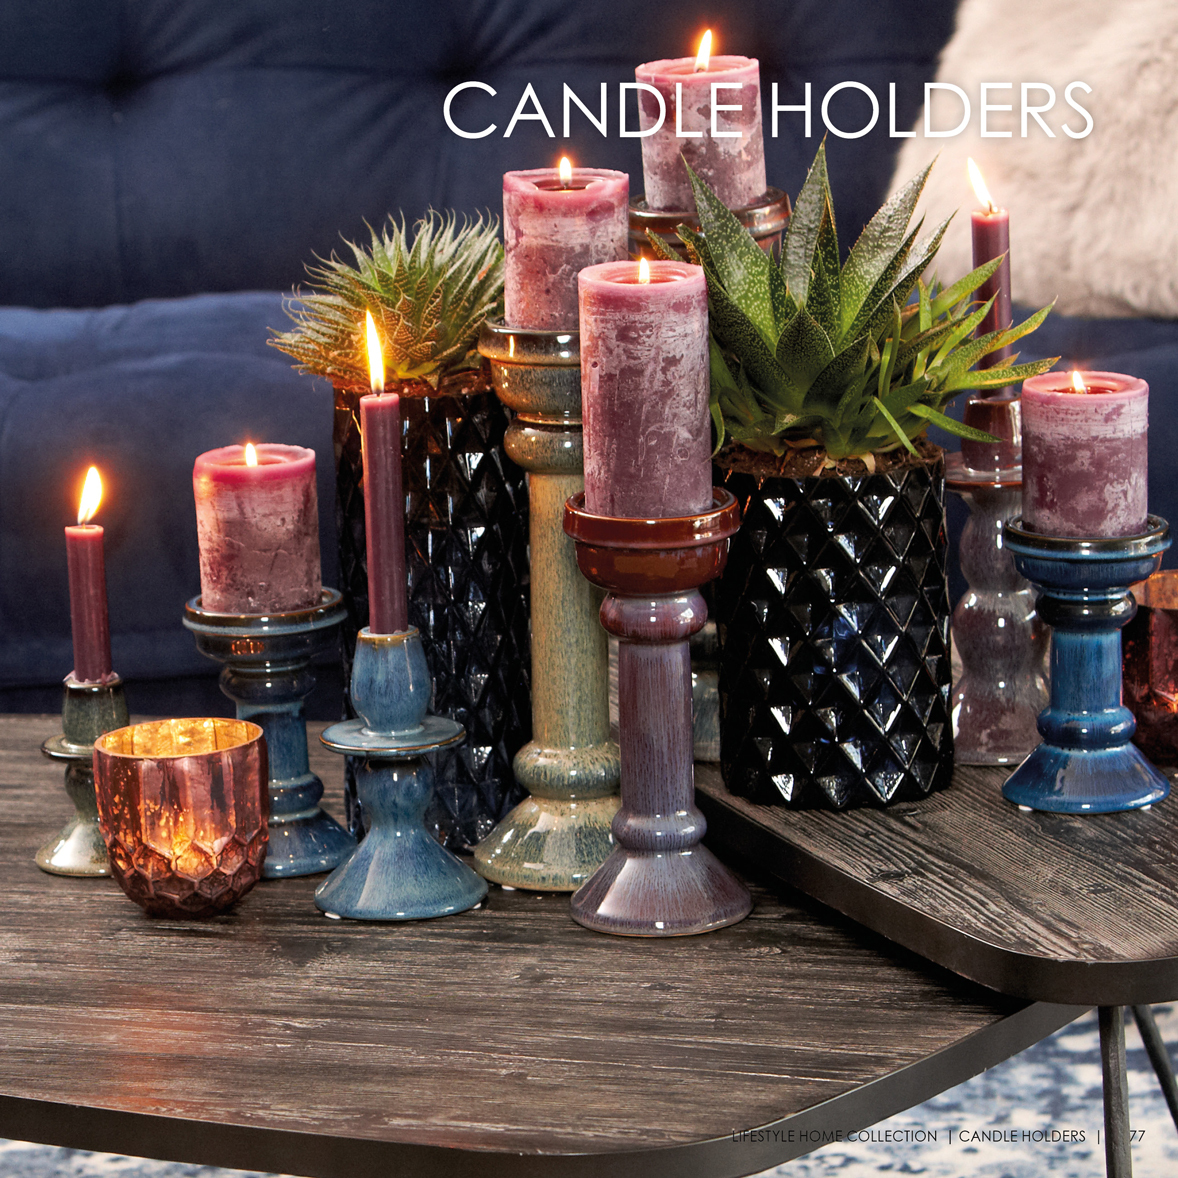 Candle holders lifestyle home collection - Lifestyle home collection ...